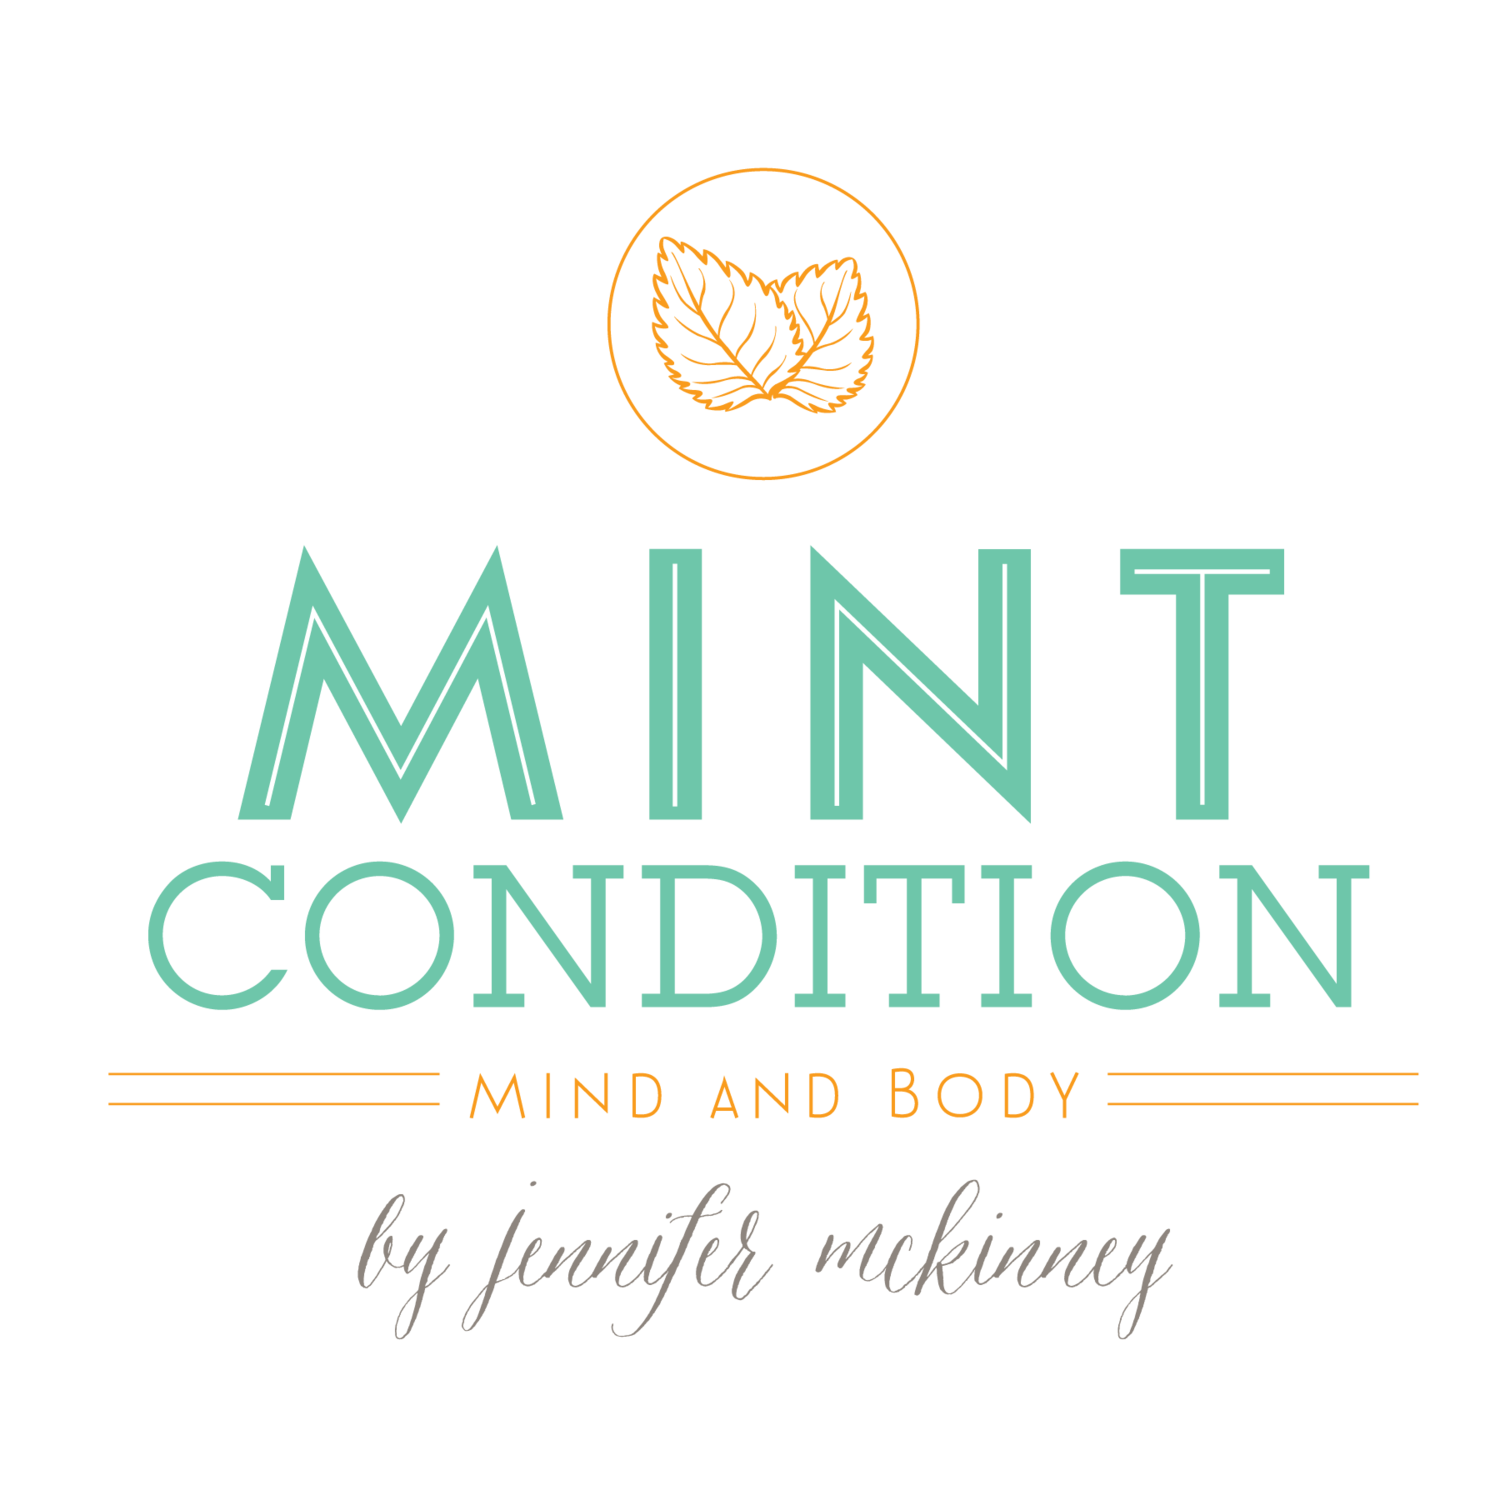 Mint condition png. Personal training mind and